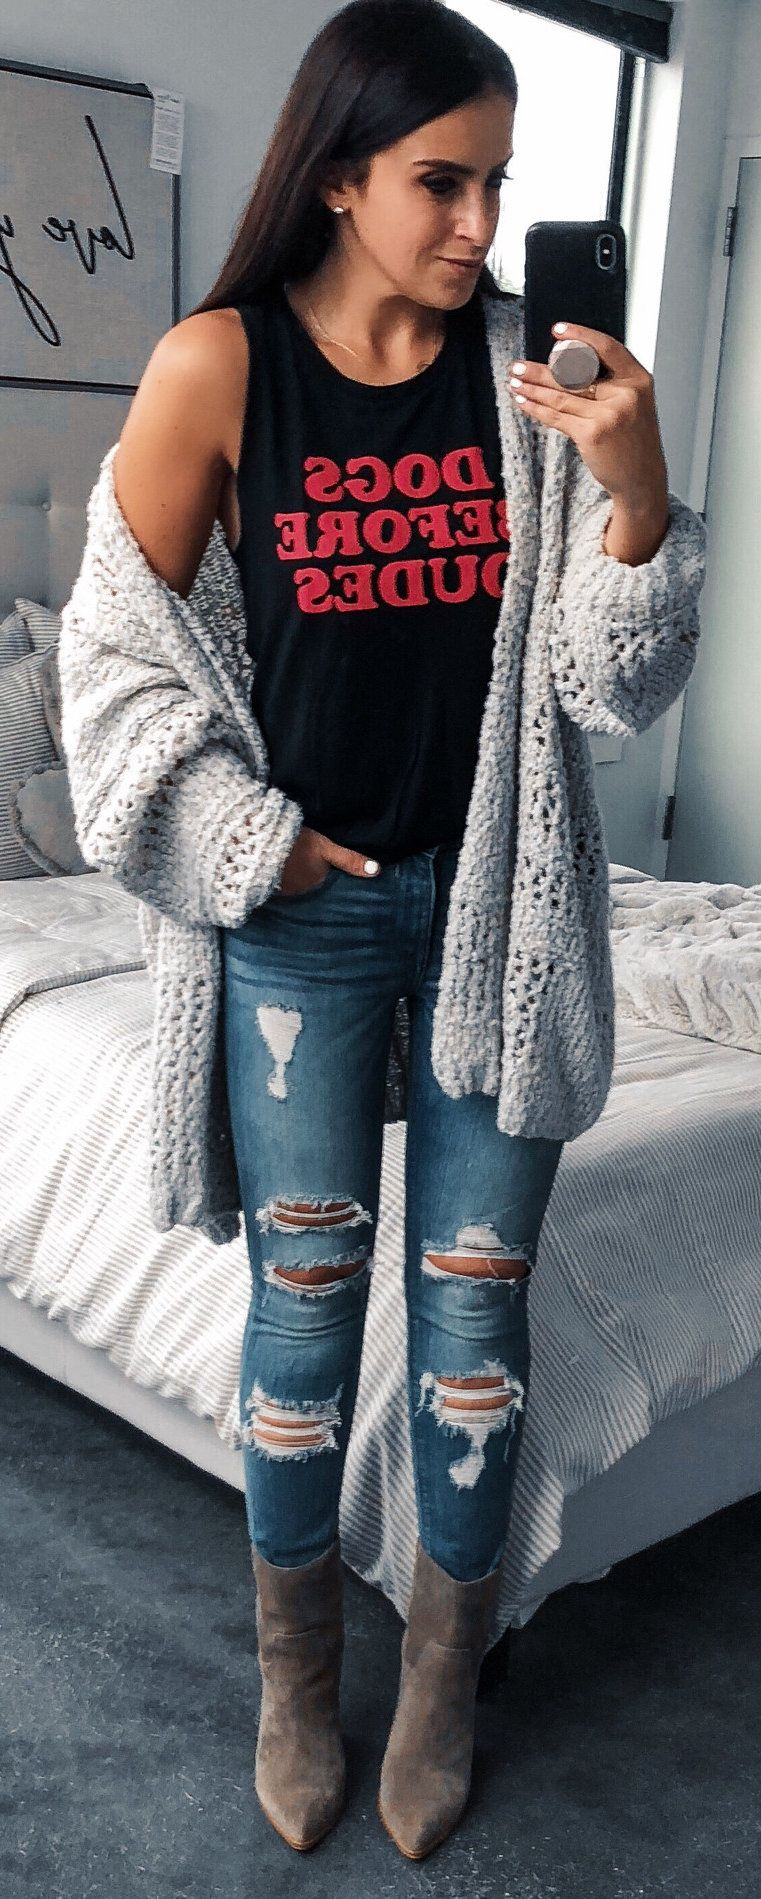 black and red tank top and gray knit open cardigan